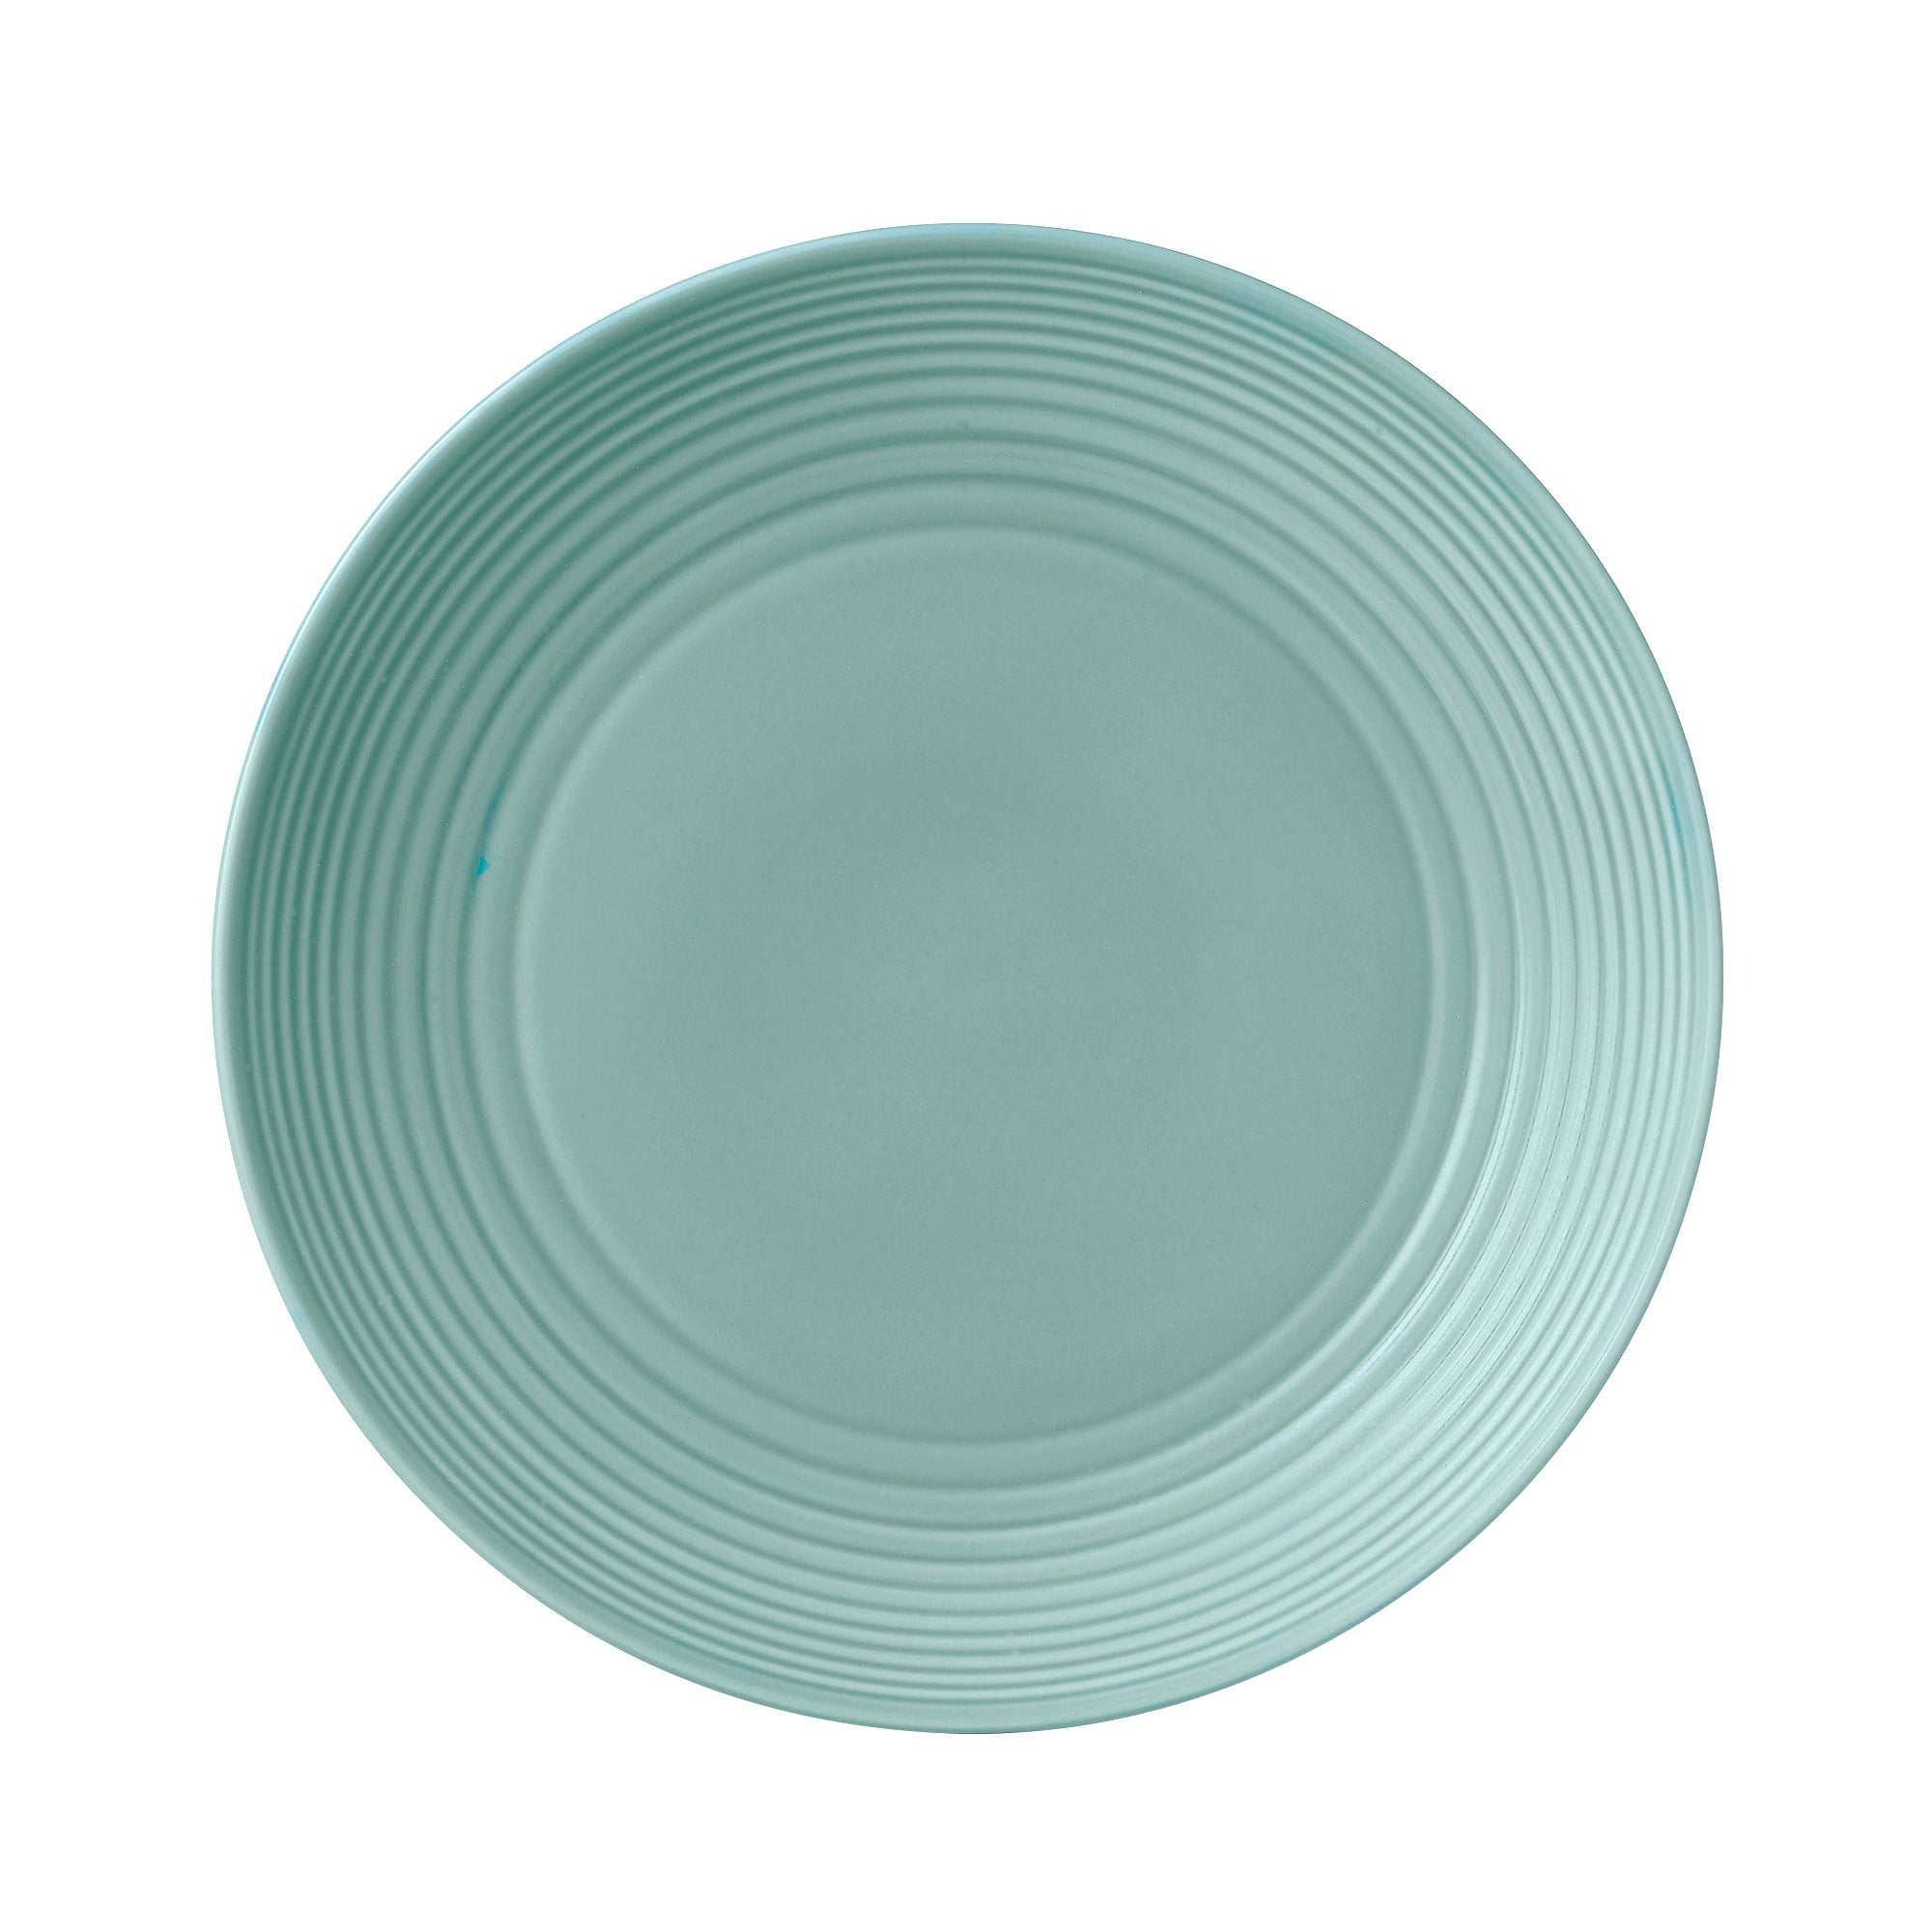 Teal Gordon Ramsay Maze Collection Plate